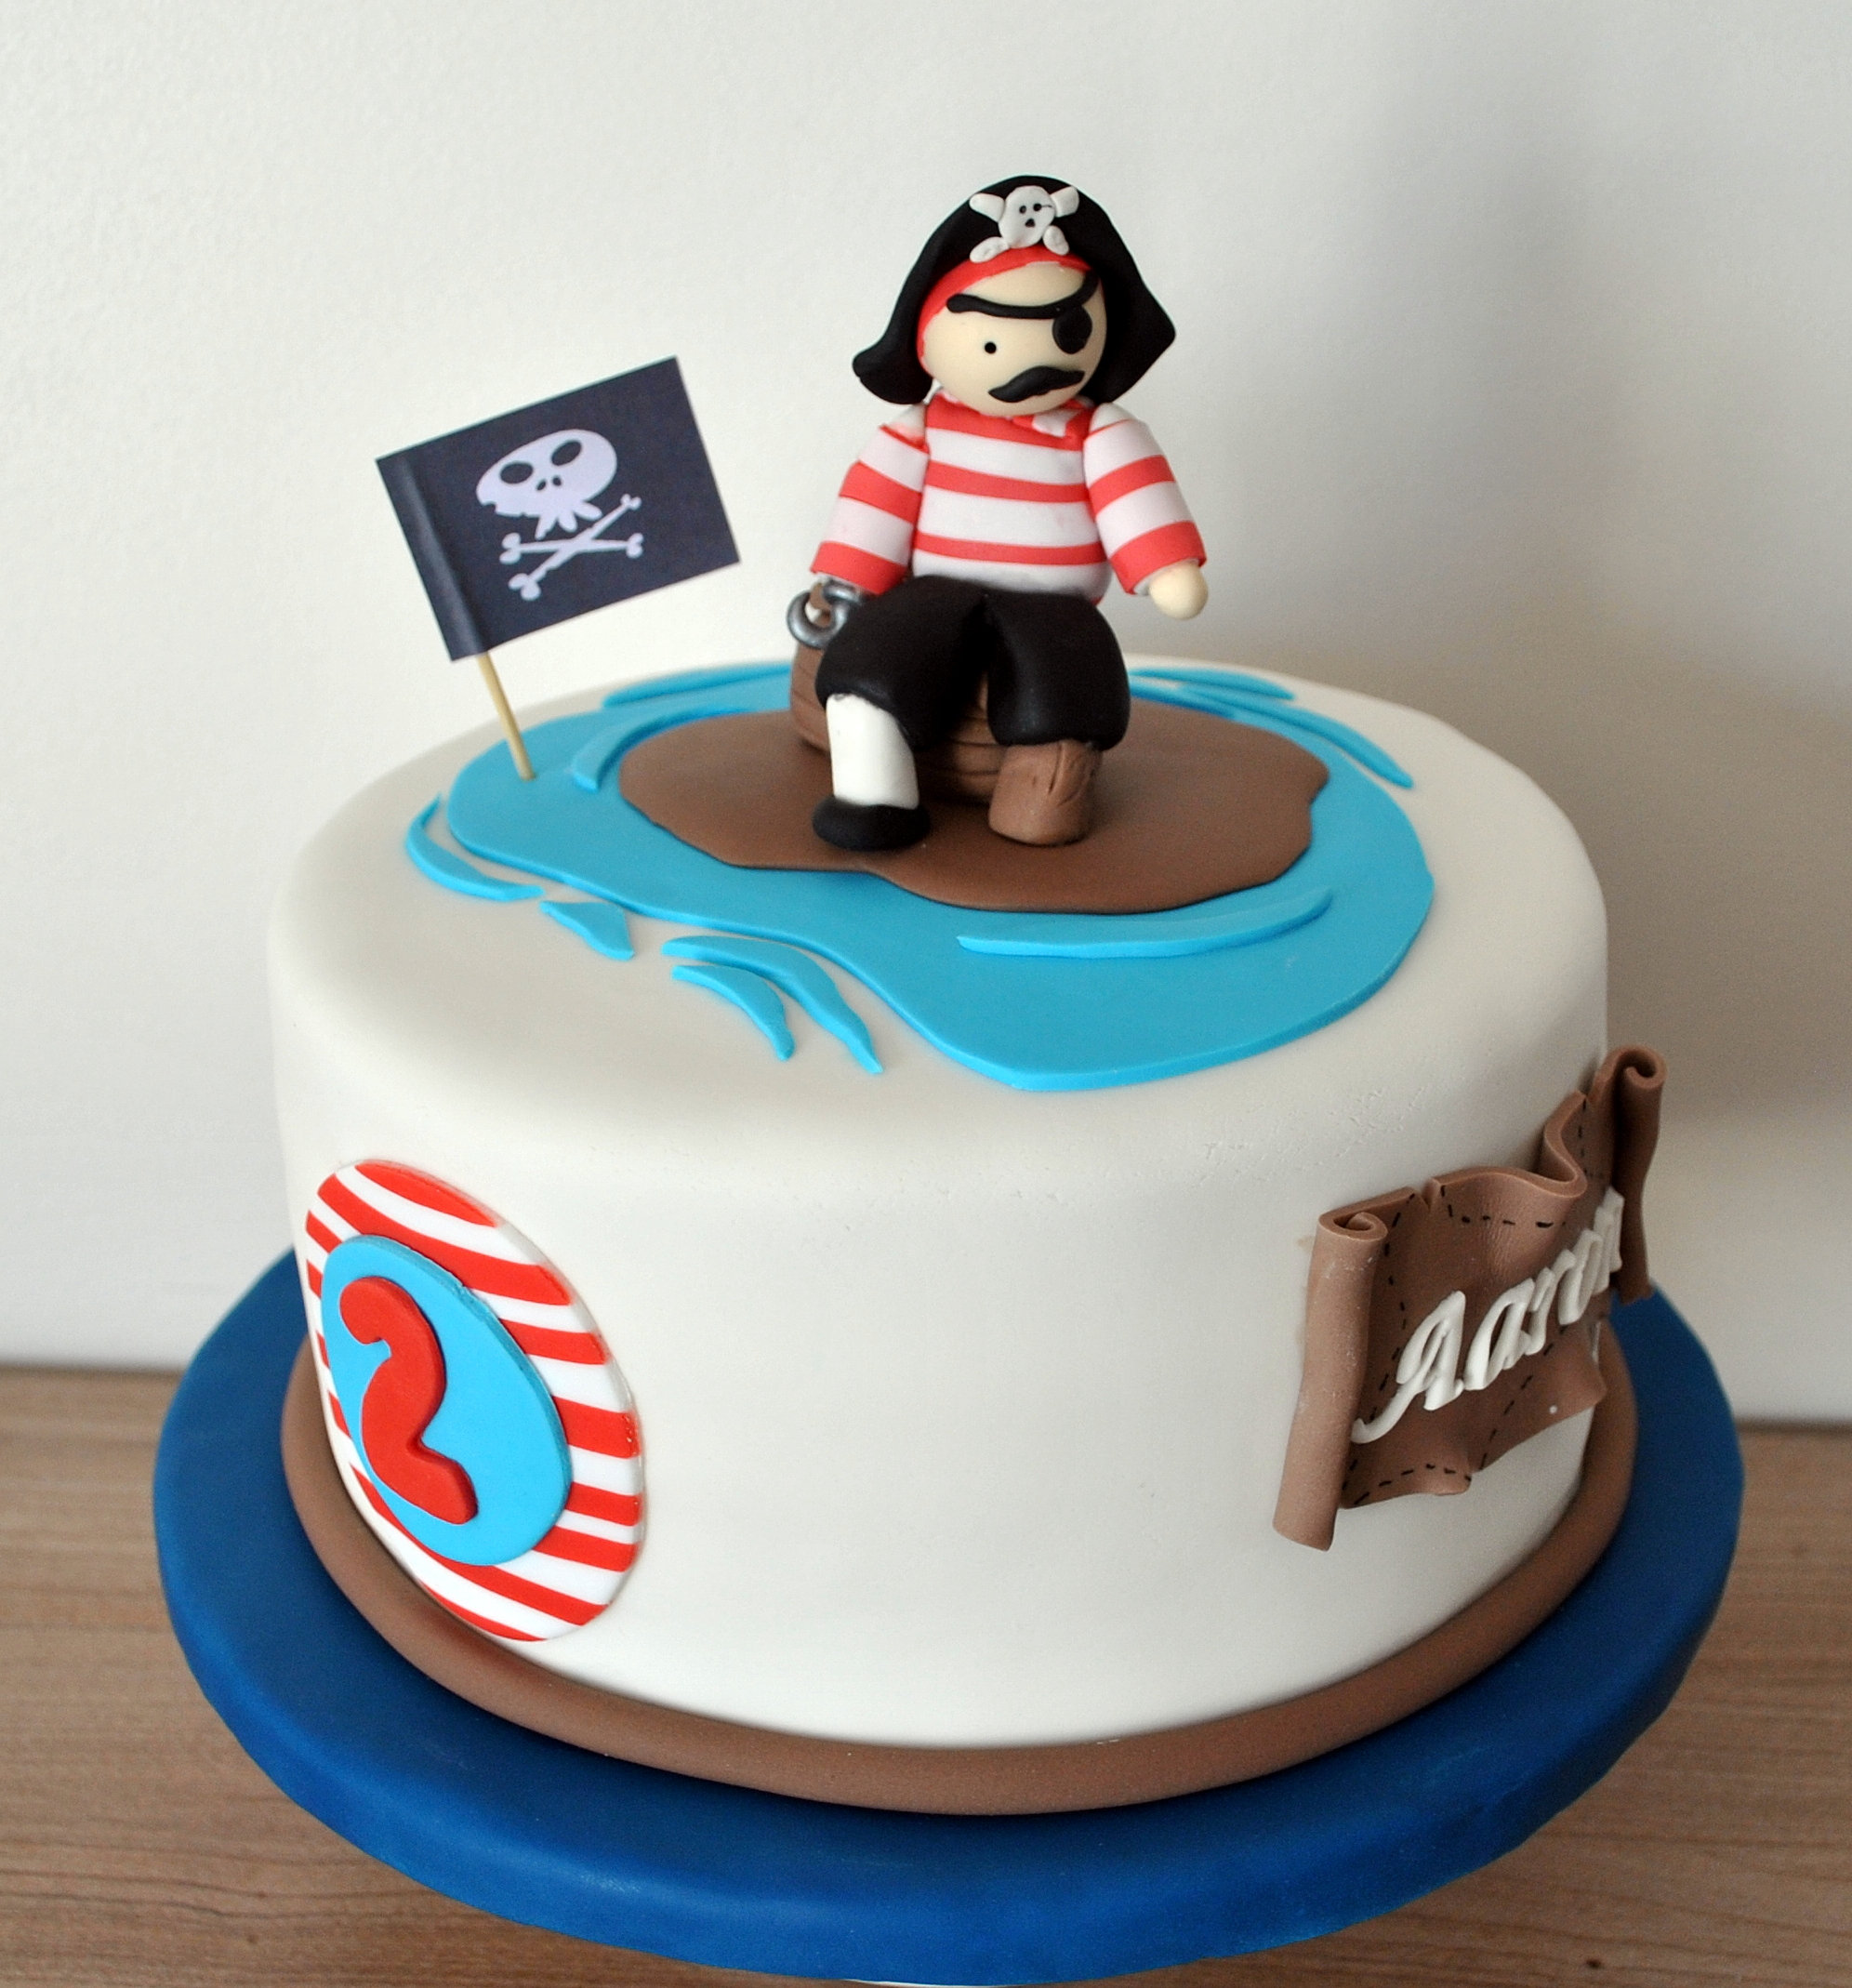 Cake Design Toulouse : Cake Design - Toulouse Gateau Pirate